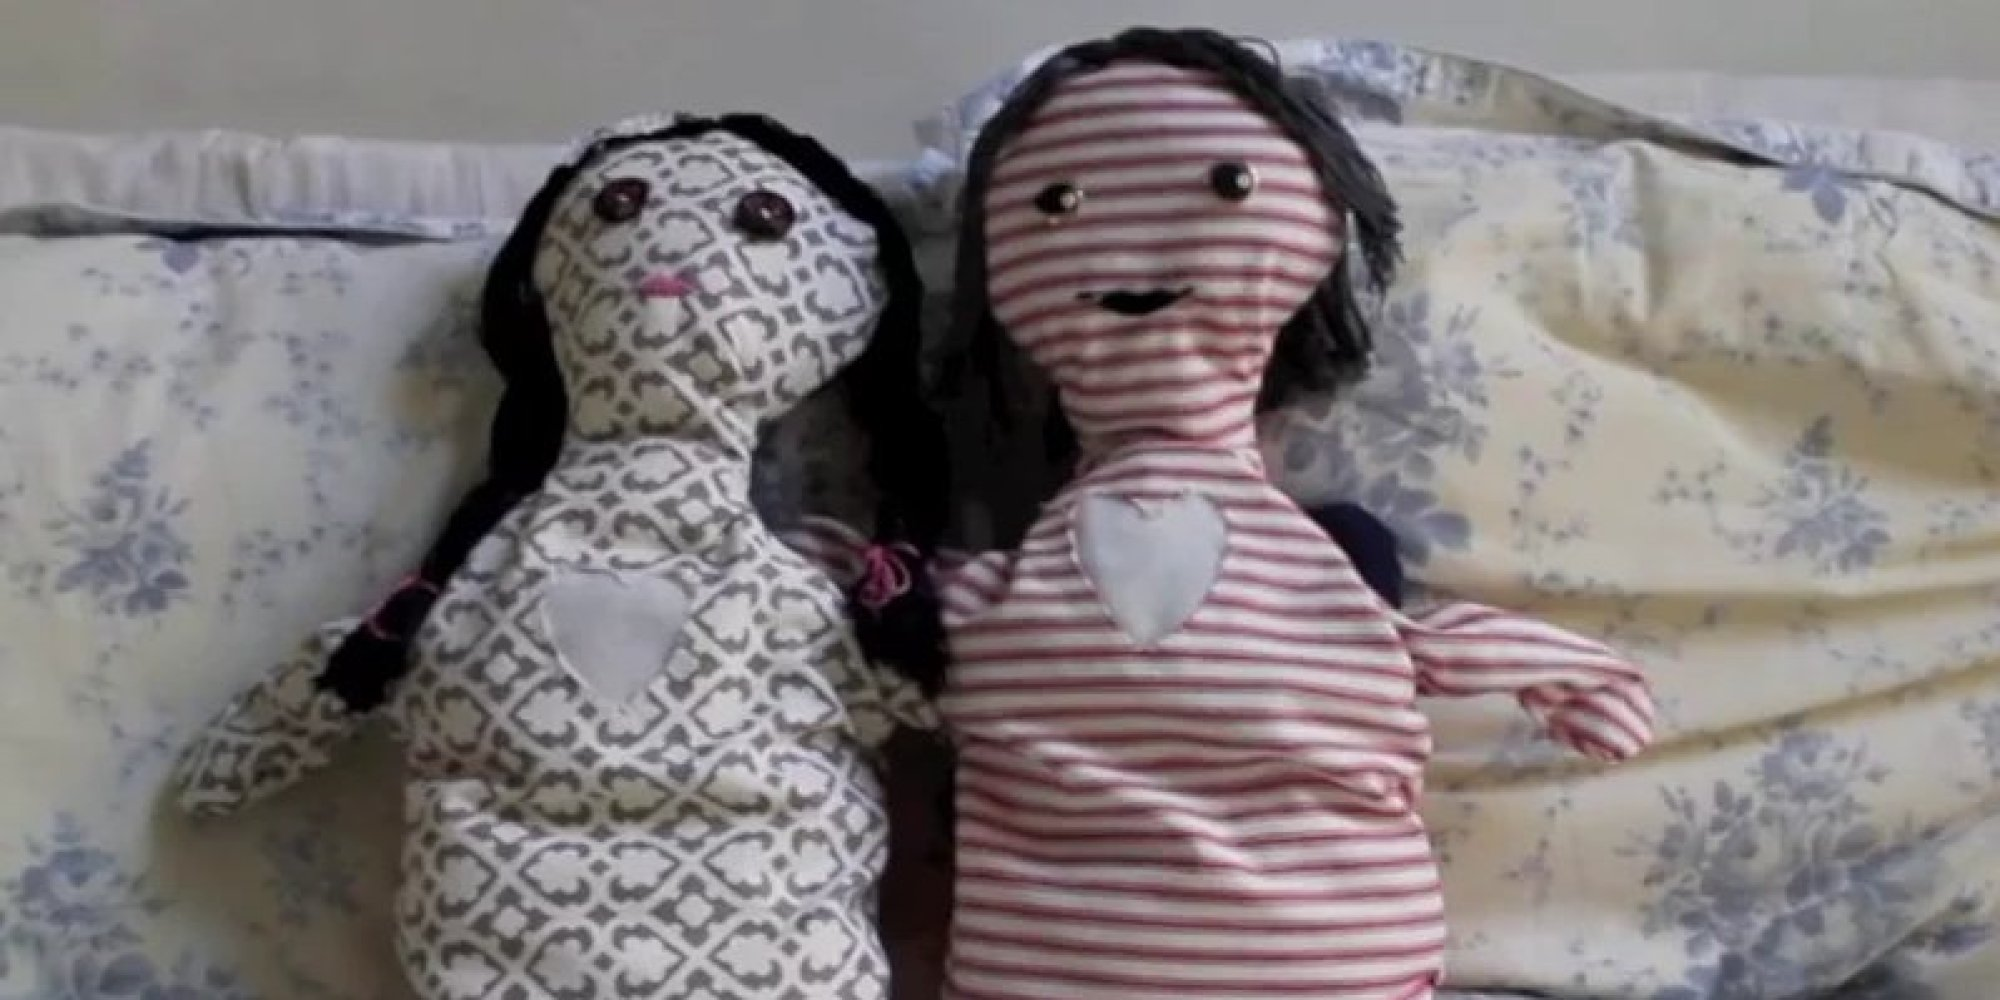 Distance dolls, le bambole per farsi le coccole a distanza (VIDEO)